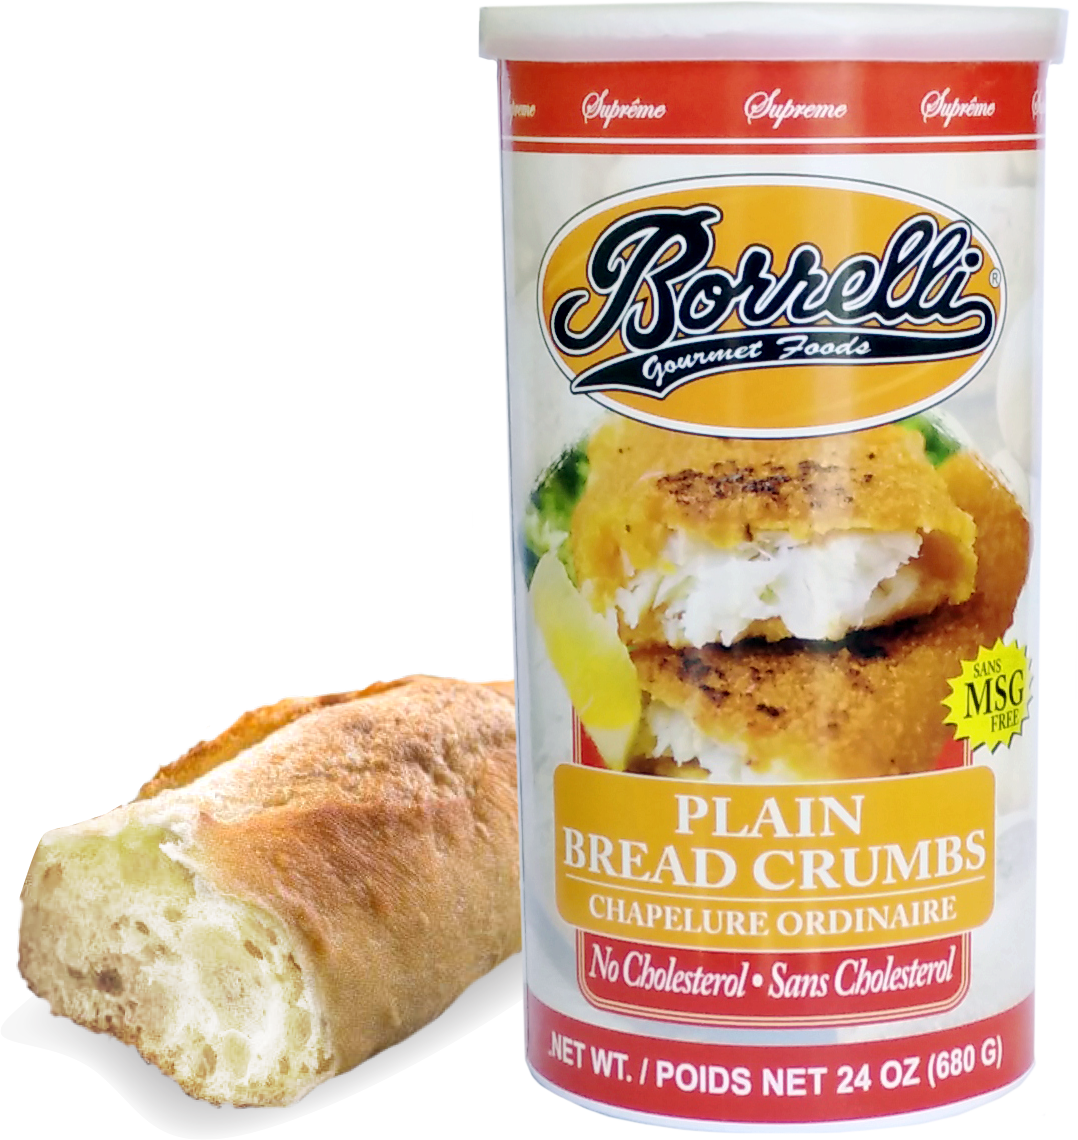 Plain Bread Crumbs, 24oz (680g)